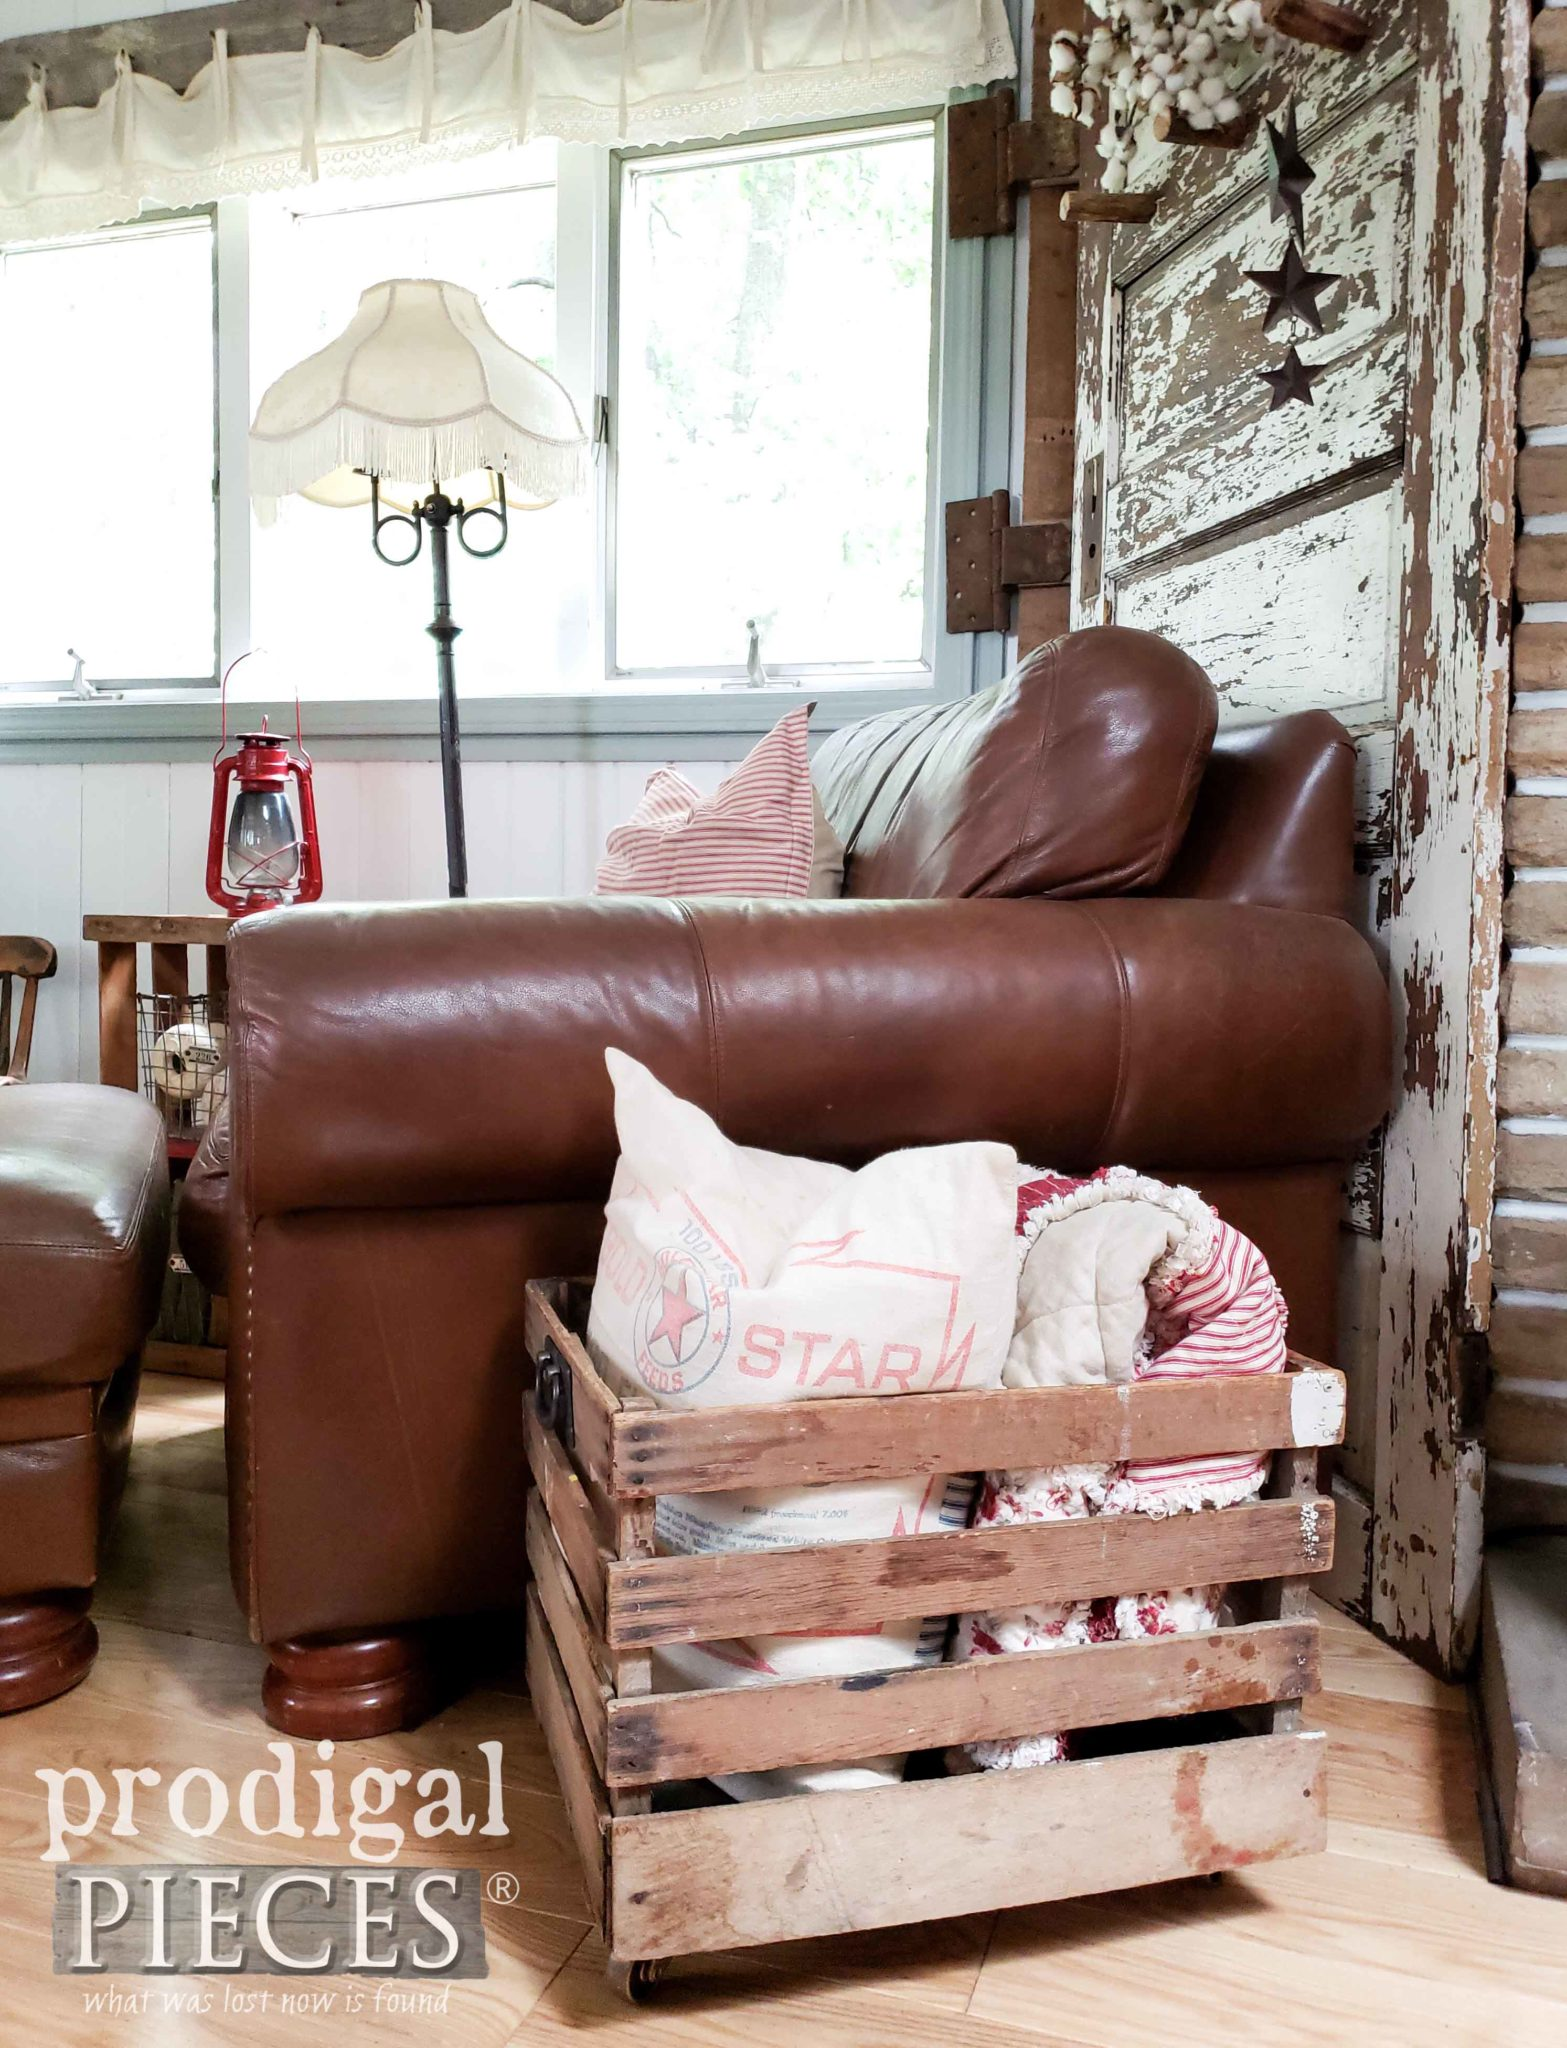 Antique Crate Turned into Pillow & Throw Bin for Farmhouse Decor by Larissa of Prodigal Pieces | prodigalpieces.com #prodigalpieces #farmhouse #diy #homedecor #upcycled #home